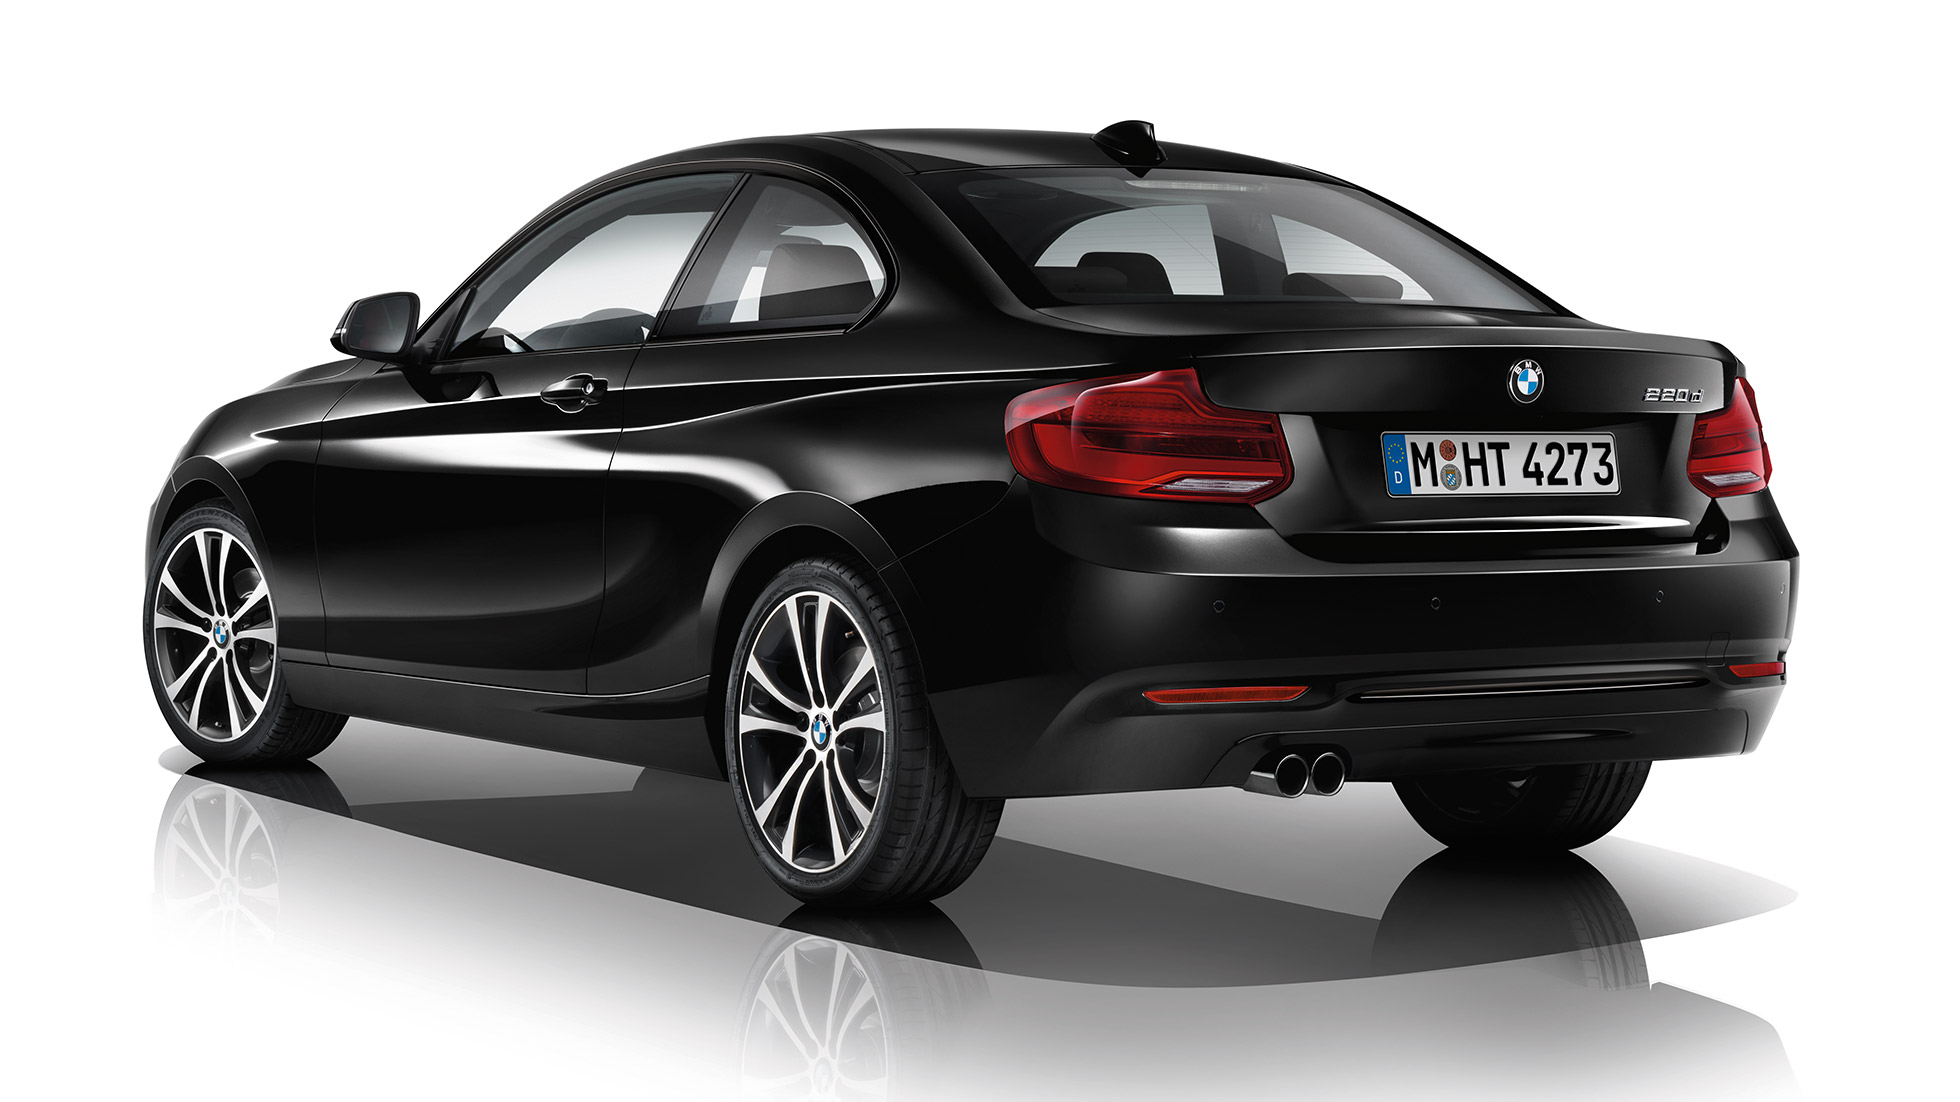 BMW 2-serie Coupé, Model Sport Line, set bagfra let drejet